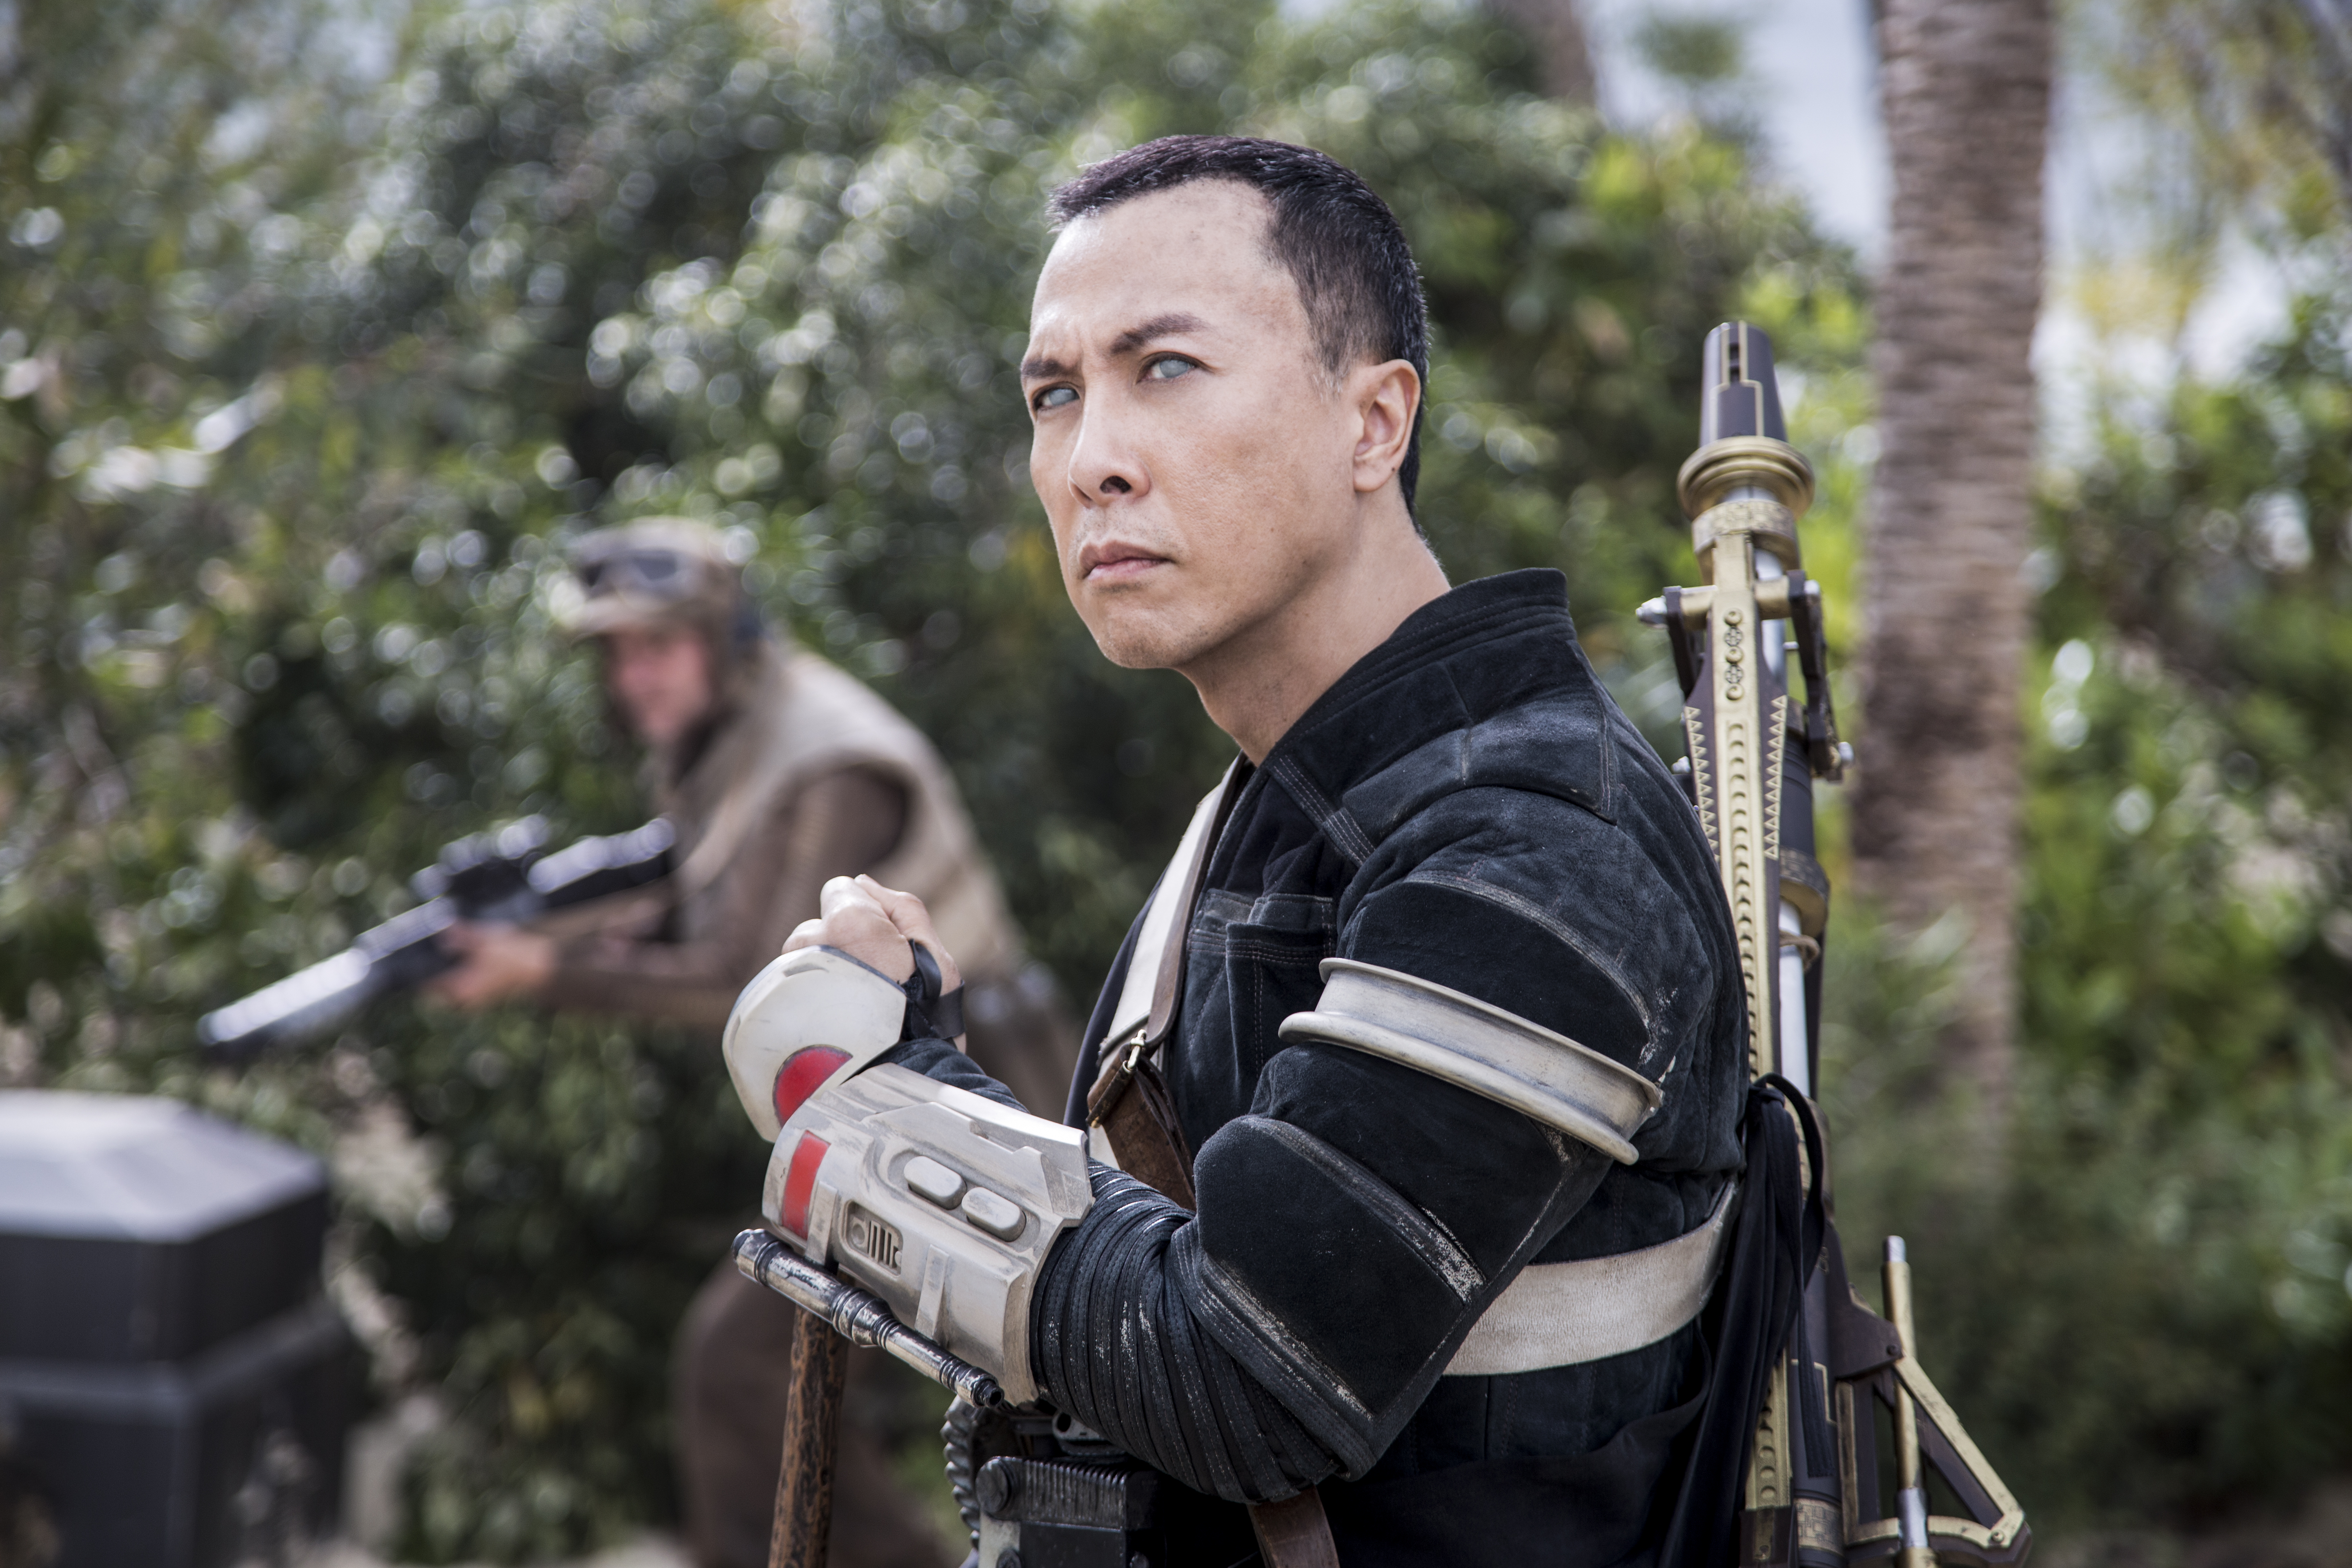 rogue-one-a-star-wars-story-official-hi-res-hd-images-_-chirrut-imwe-donnie-yen